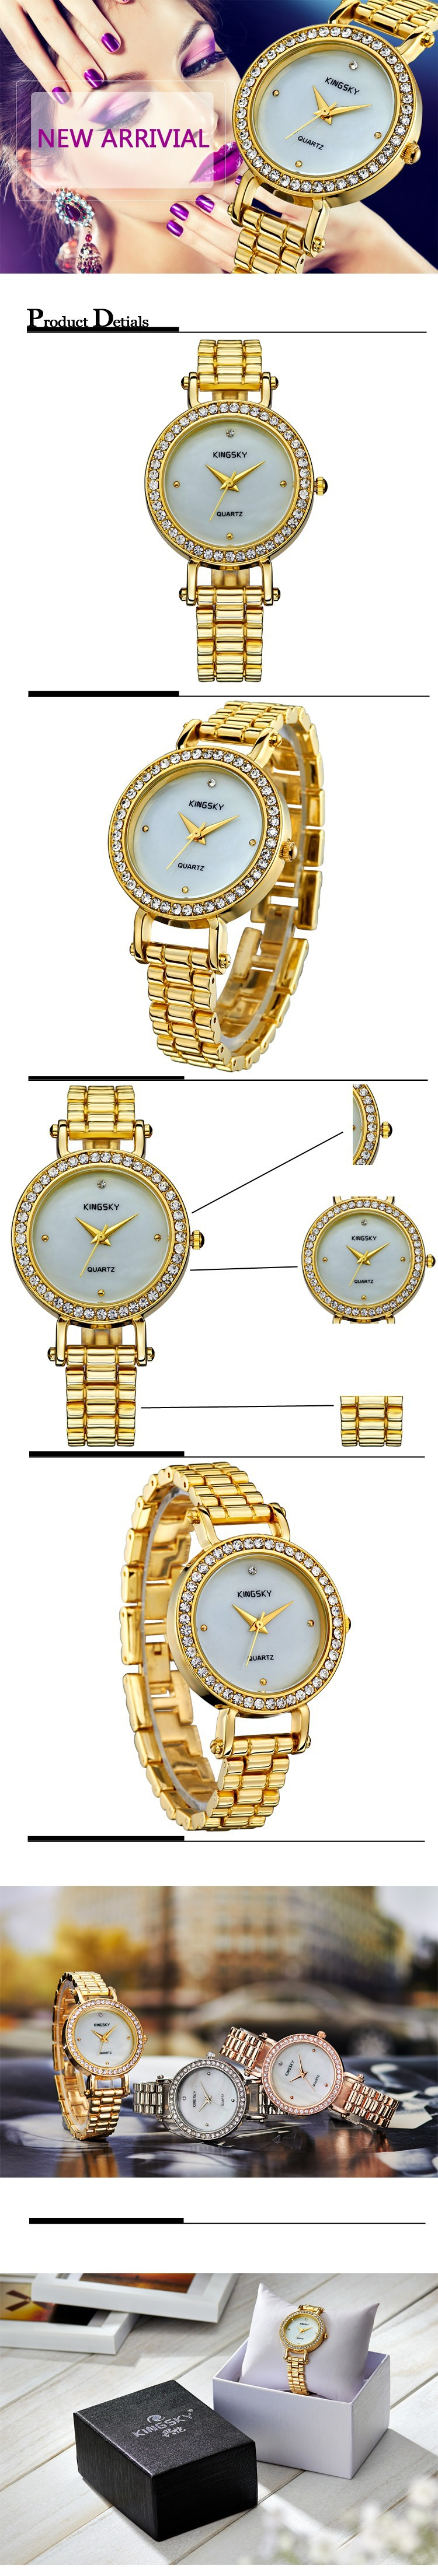 Free shipping today - K021062 KINGSKY Watch Lady Watch Gold Diamond Case White Dial Alloy Band Analog Gold Band Japan Quartz for Fashion occations